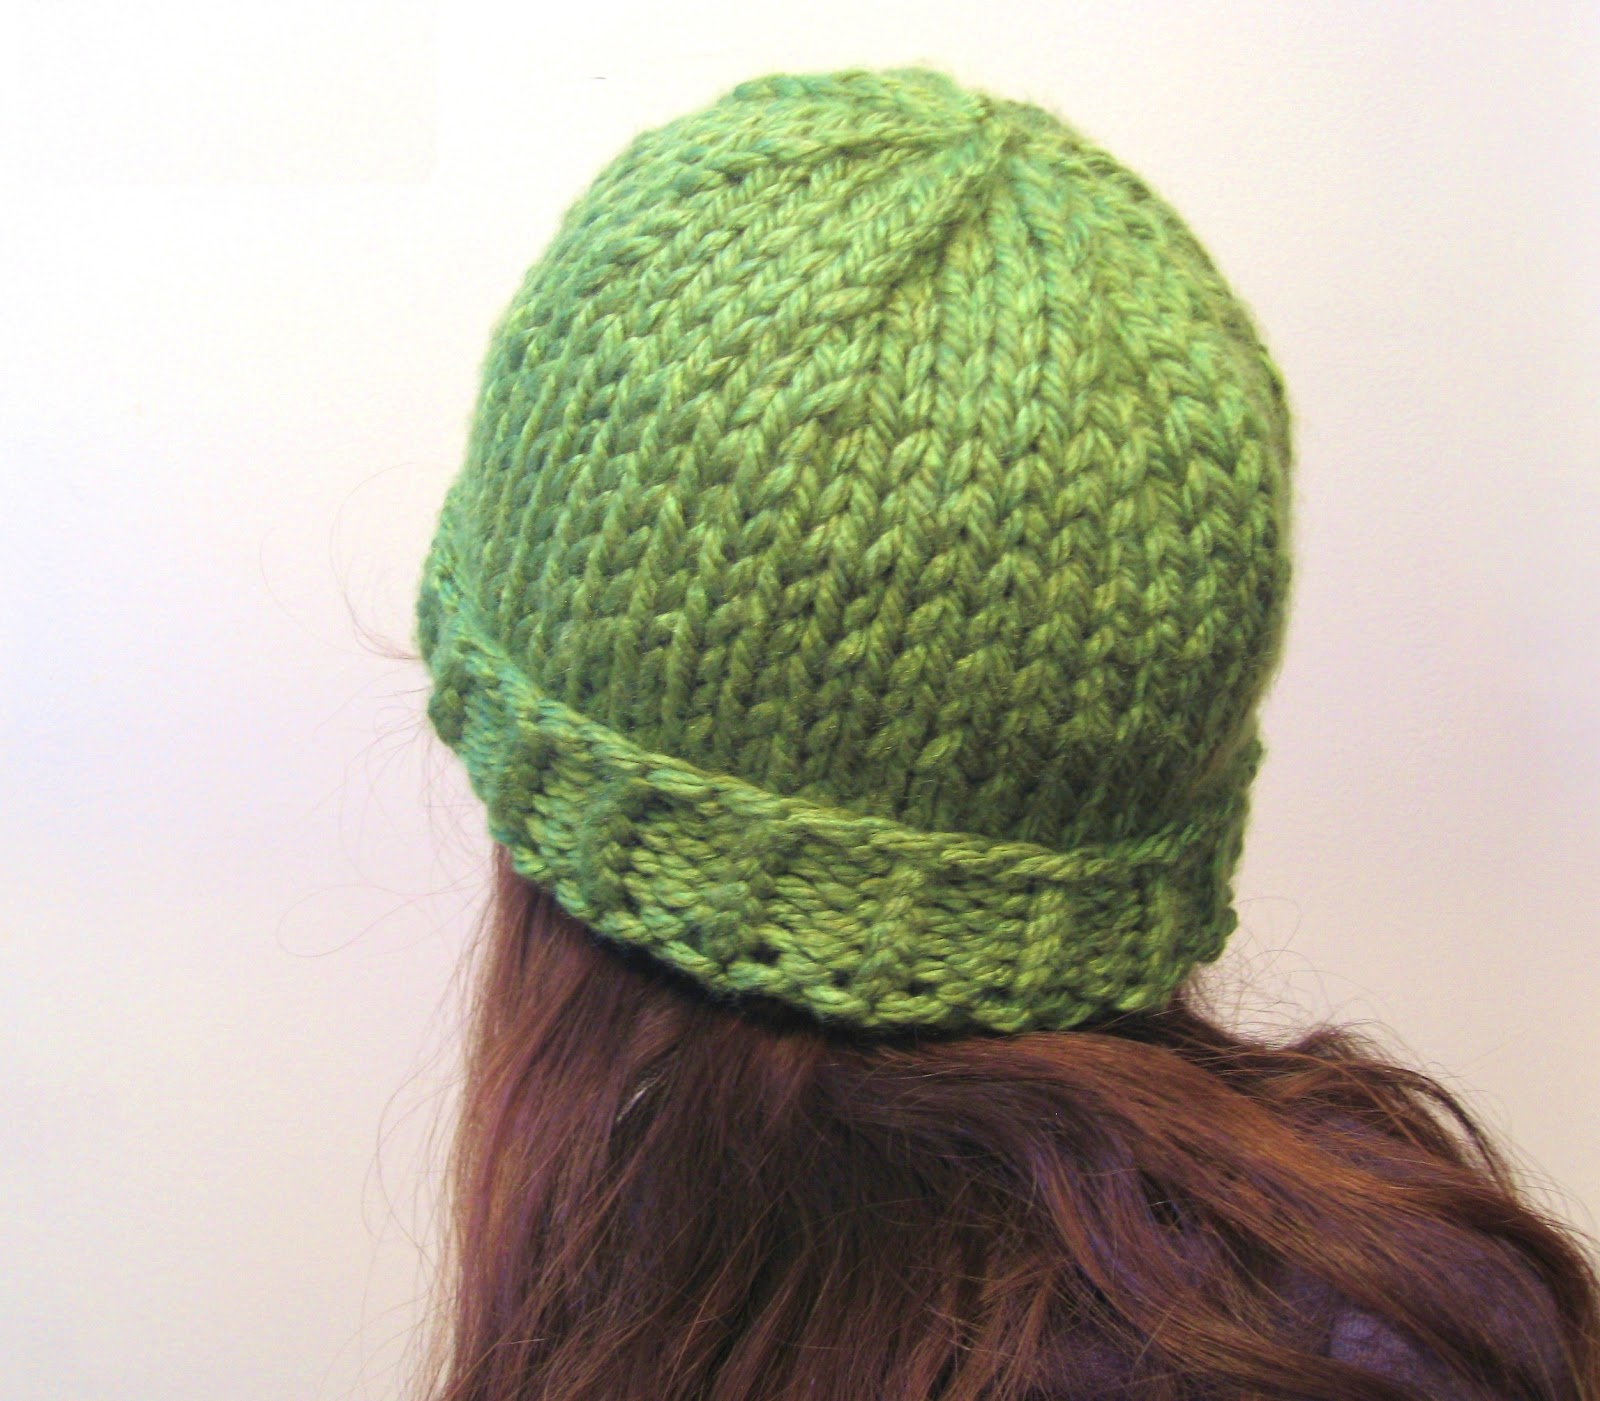 Easy Hat Knitting Patterns : megan E sass handknits: Free Knitting Pattern: Easy Chunky ...